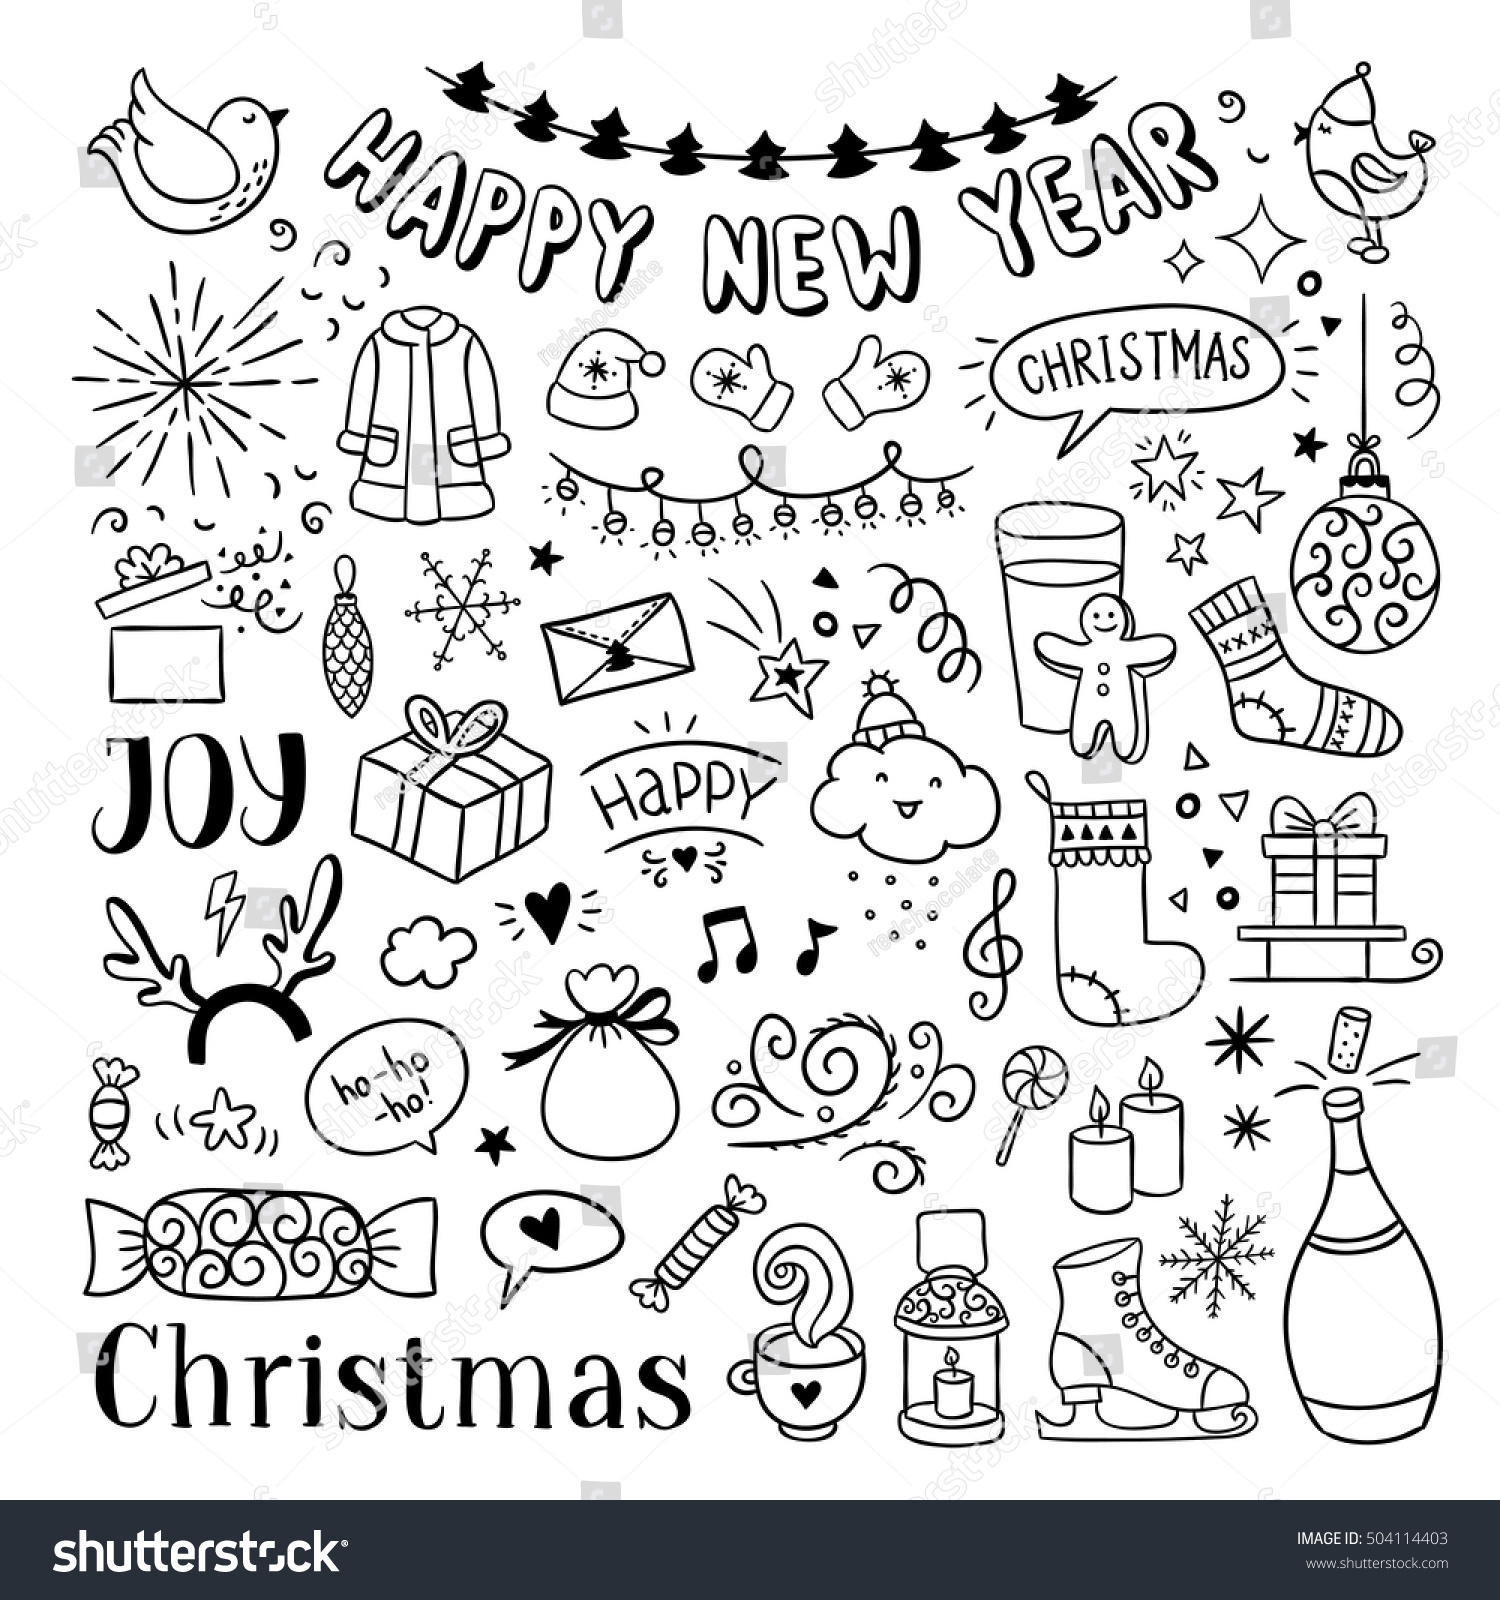 Hand Drawn Christmas New Year Doodles Stock Vector